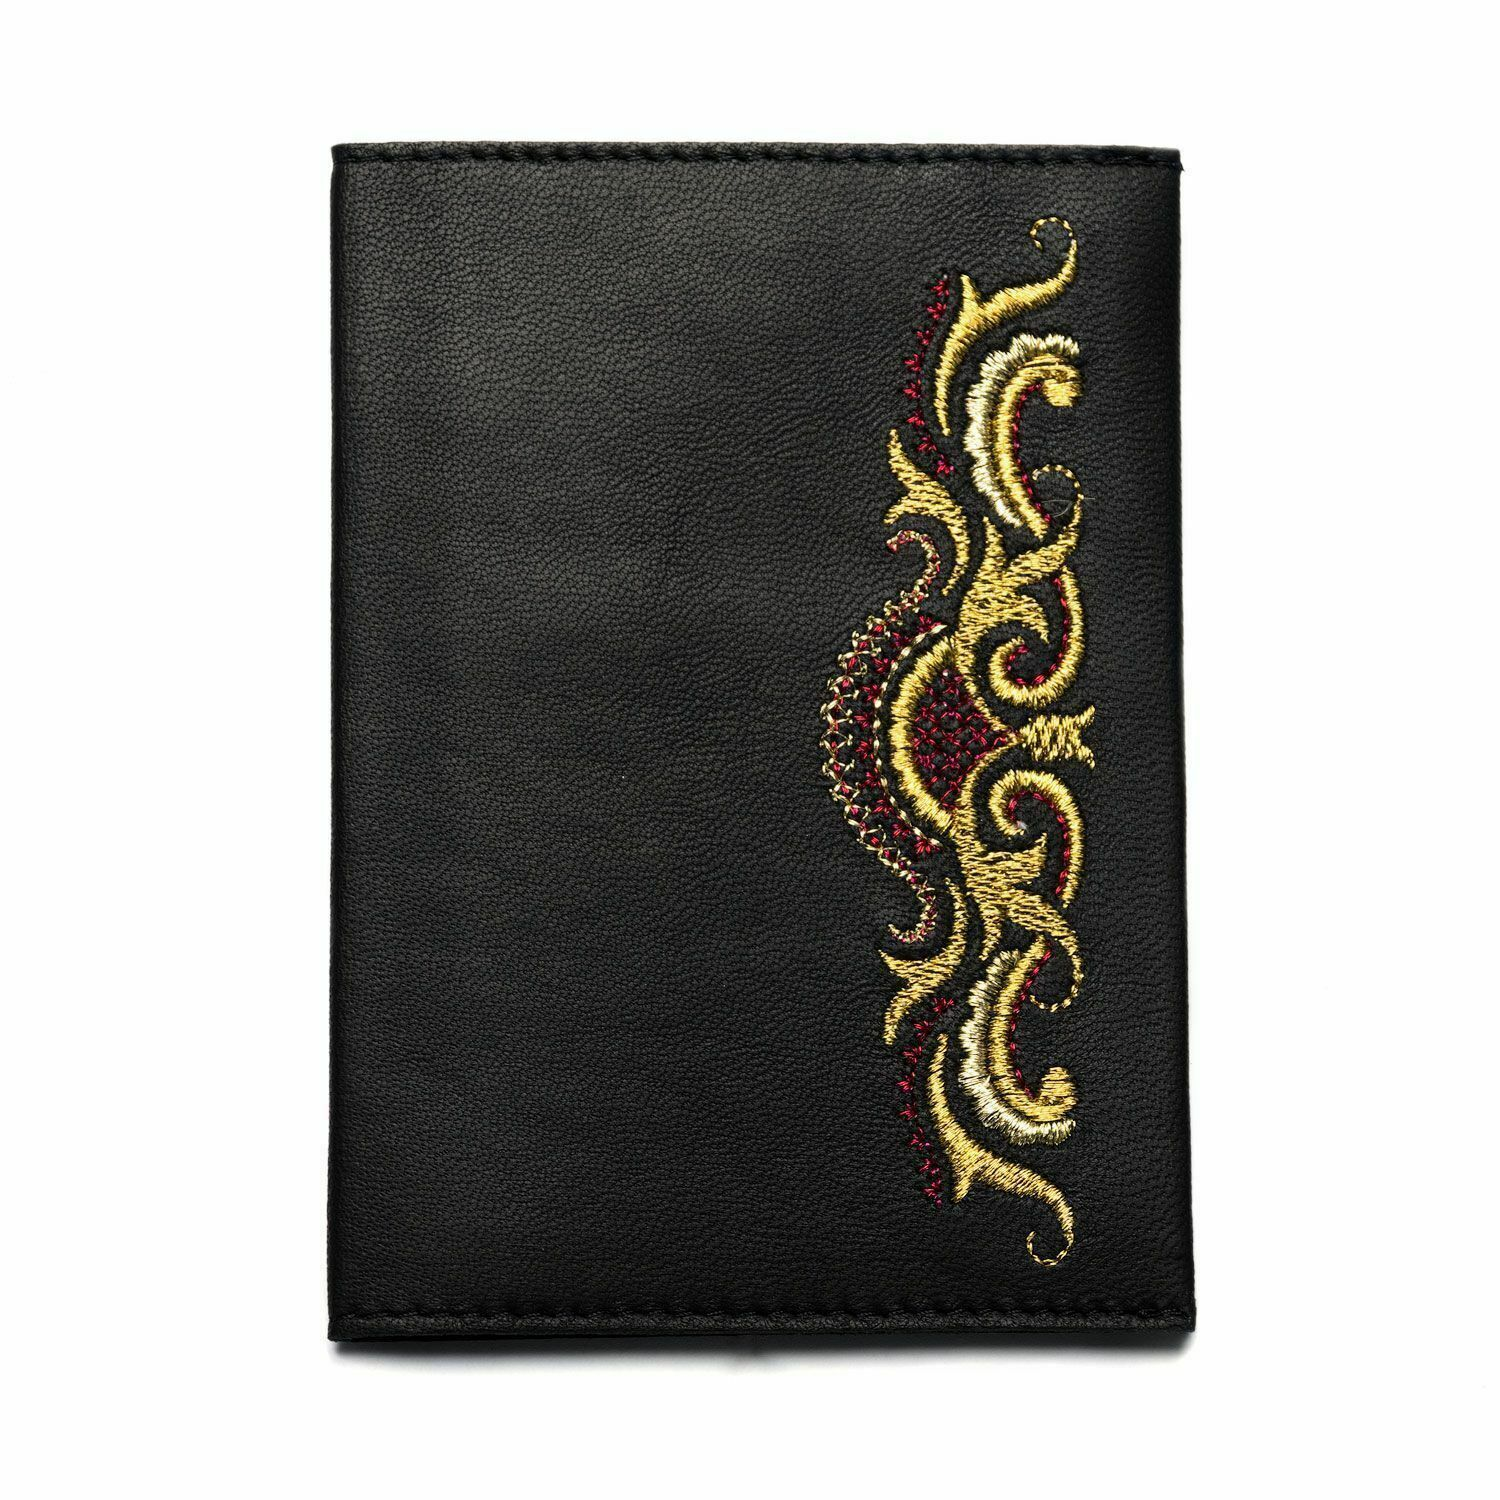 Charming Pretty Genuine Leather Passport Cover with embroidered pattern